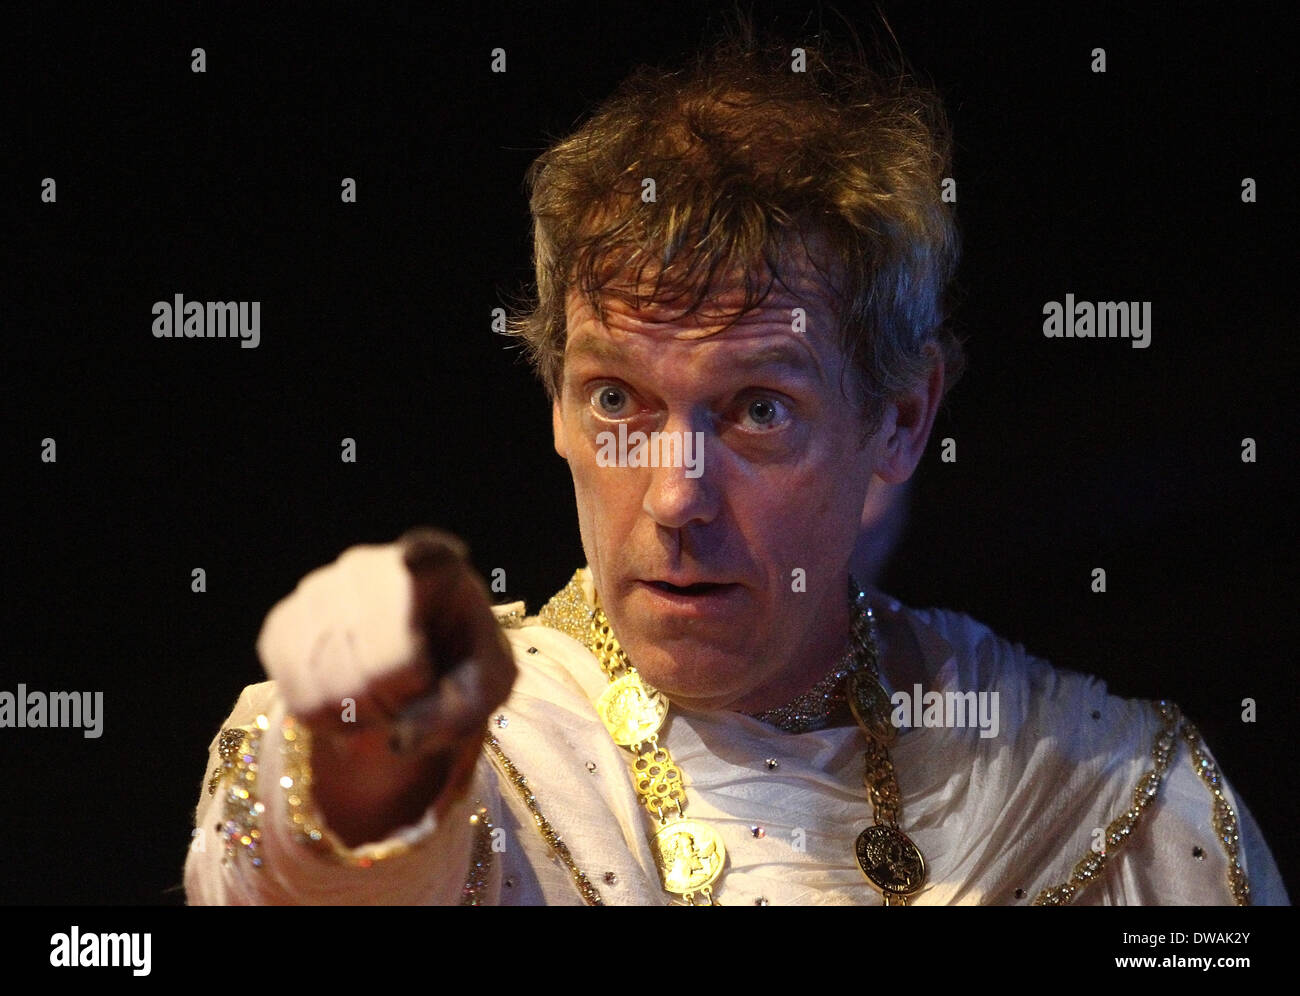 New Orleans, LOUISIANA, USA. 2nd Mar, 2014. Actor Hugh Laurie points out to the crowd as Bacchus 2014 during the Stock Photo